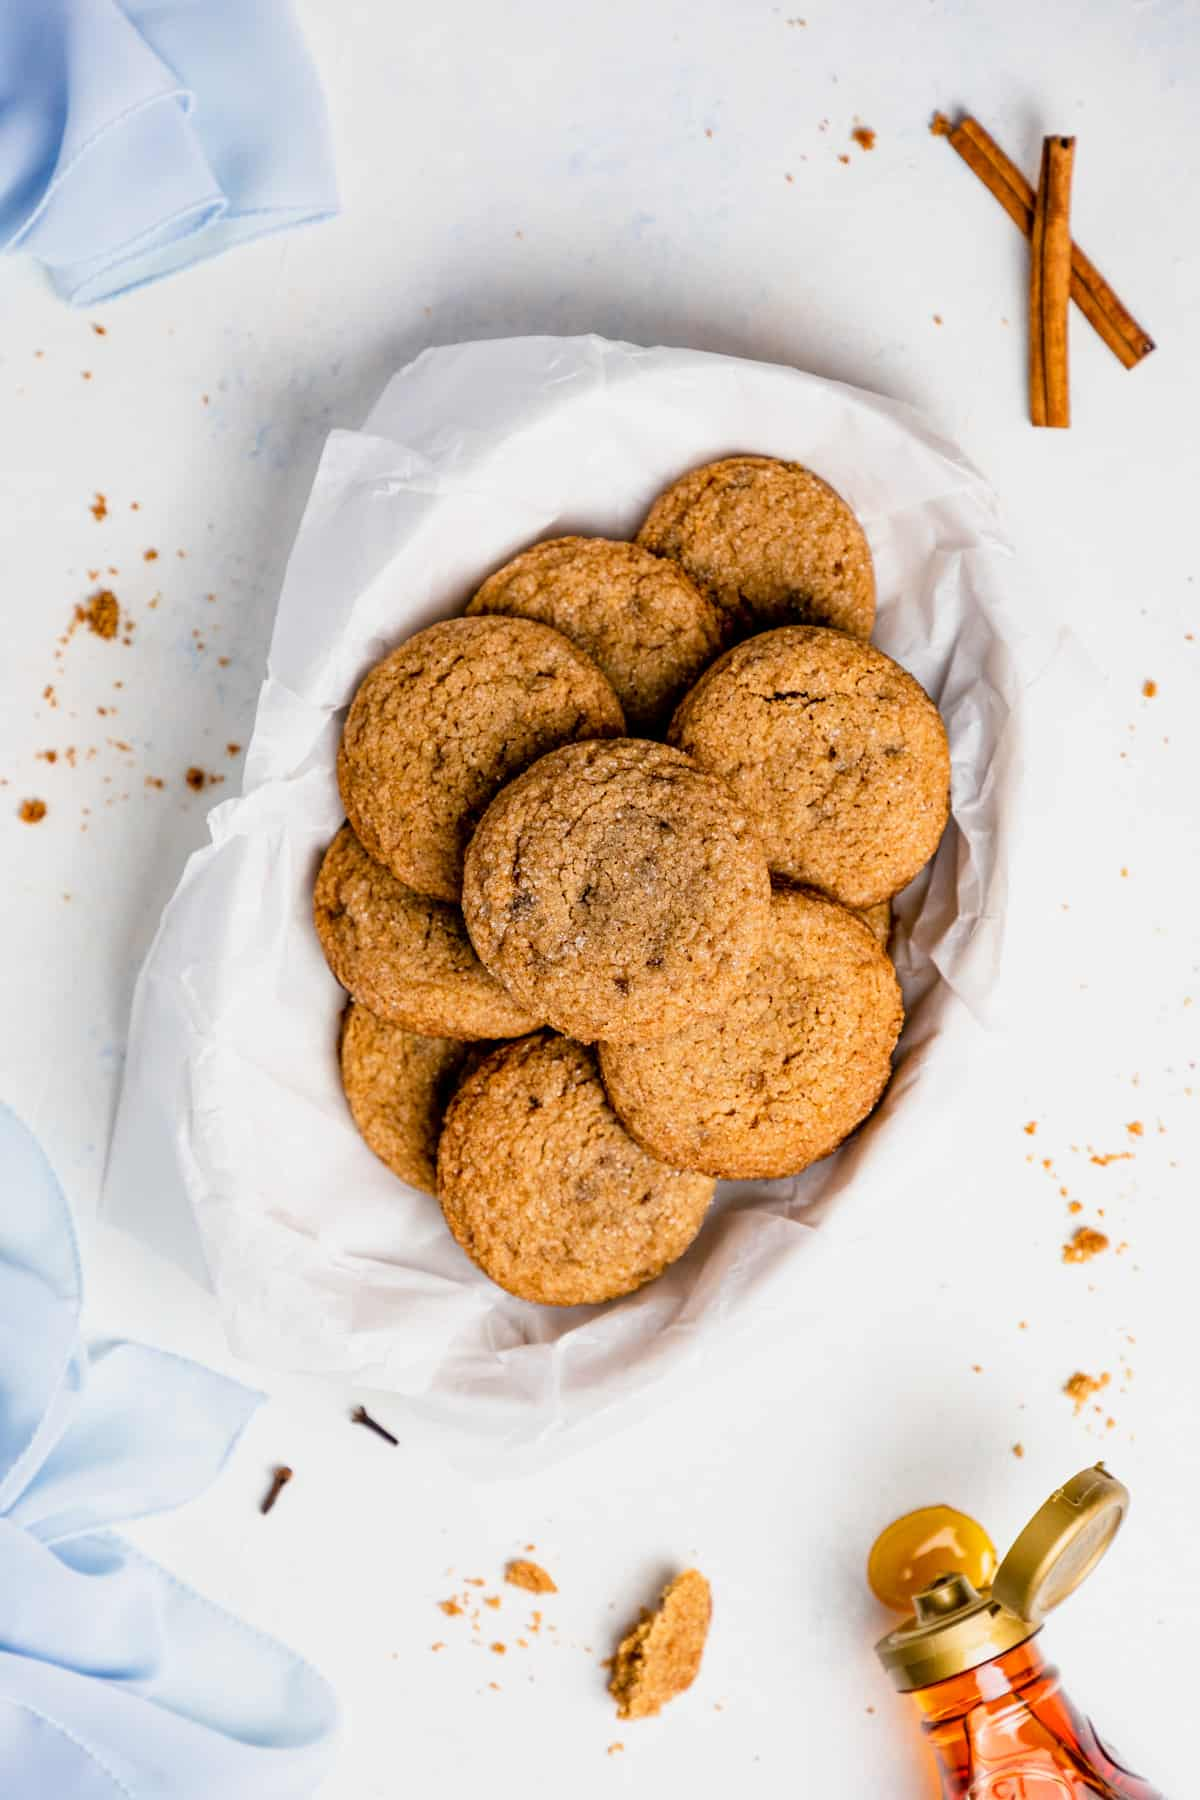 gluten free ginger snaps on a plate surrounded by a blue kitchen towel.